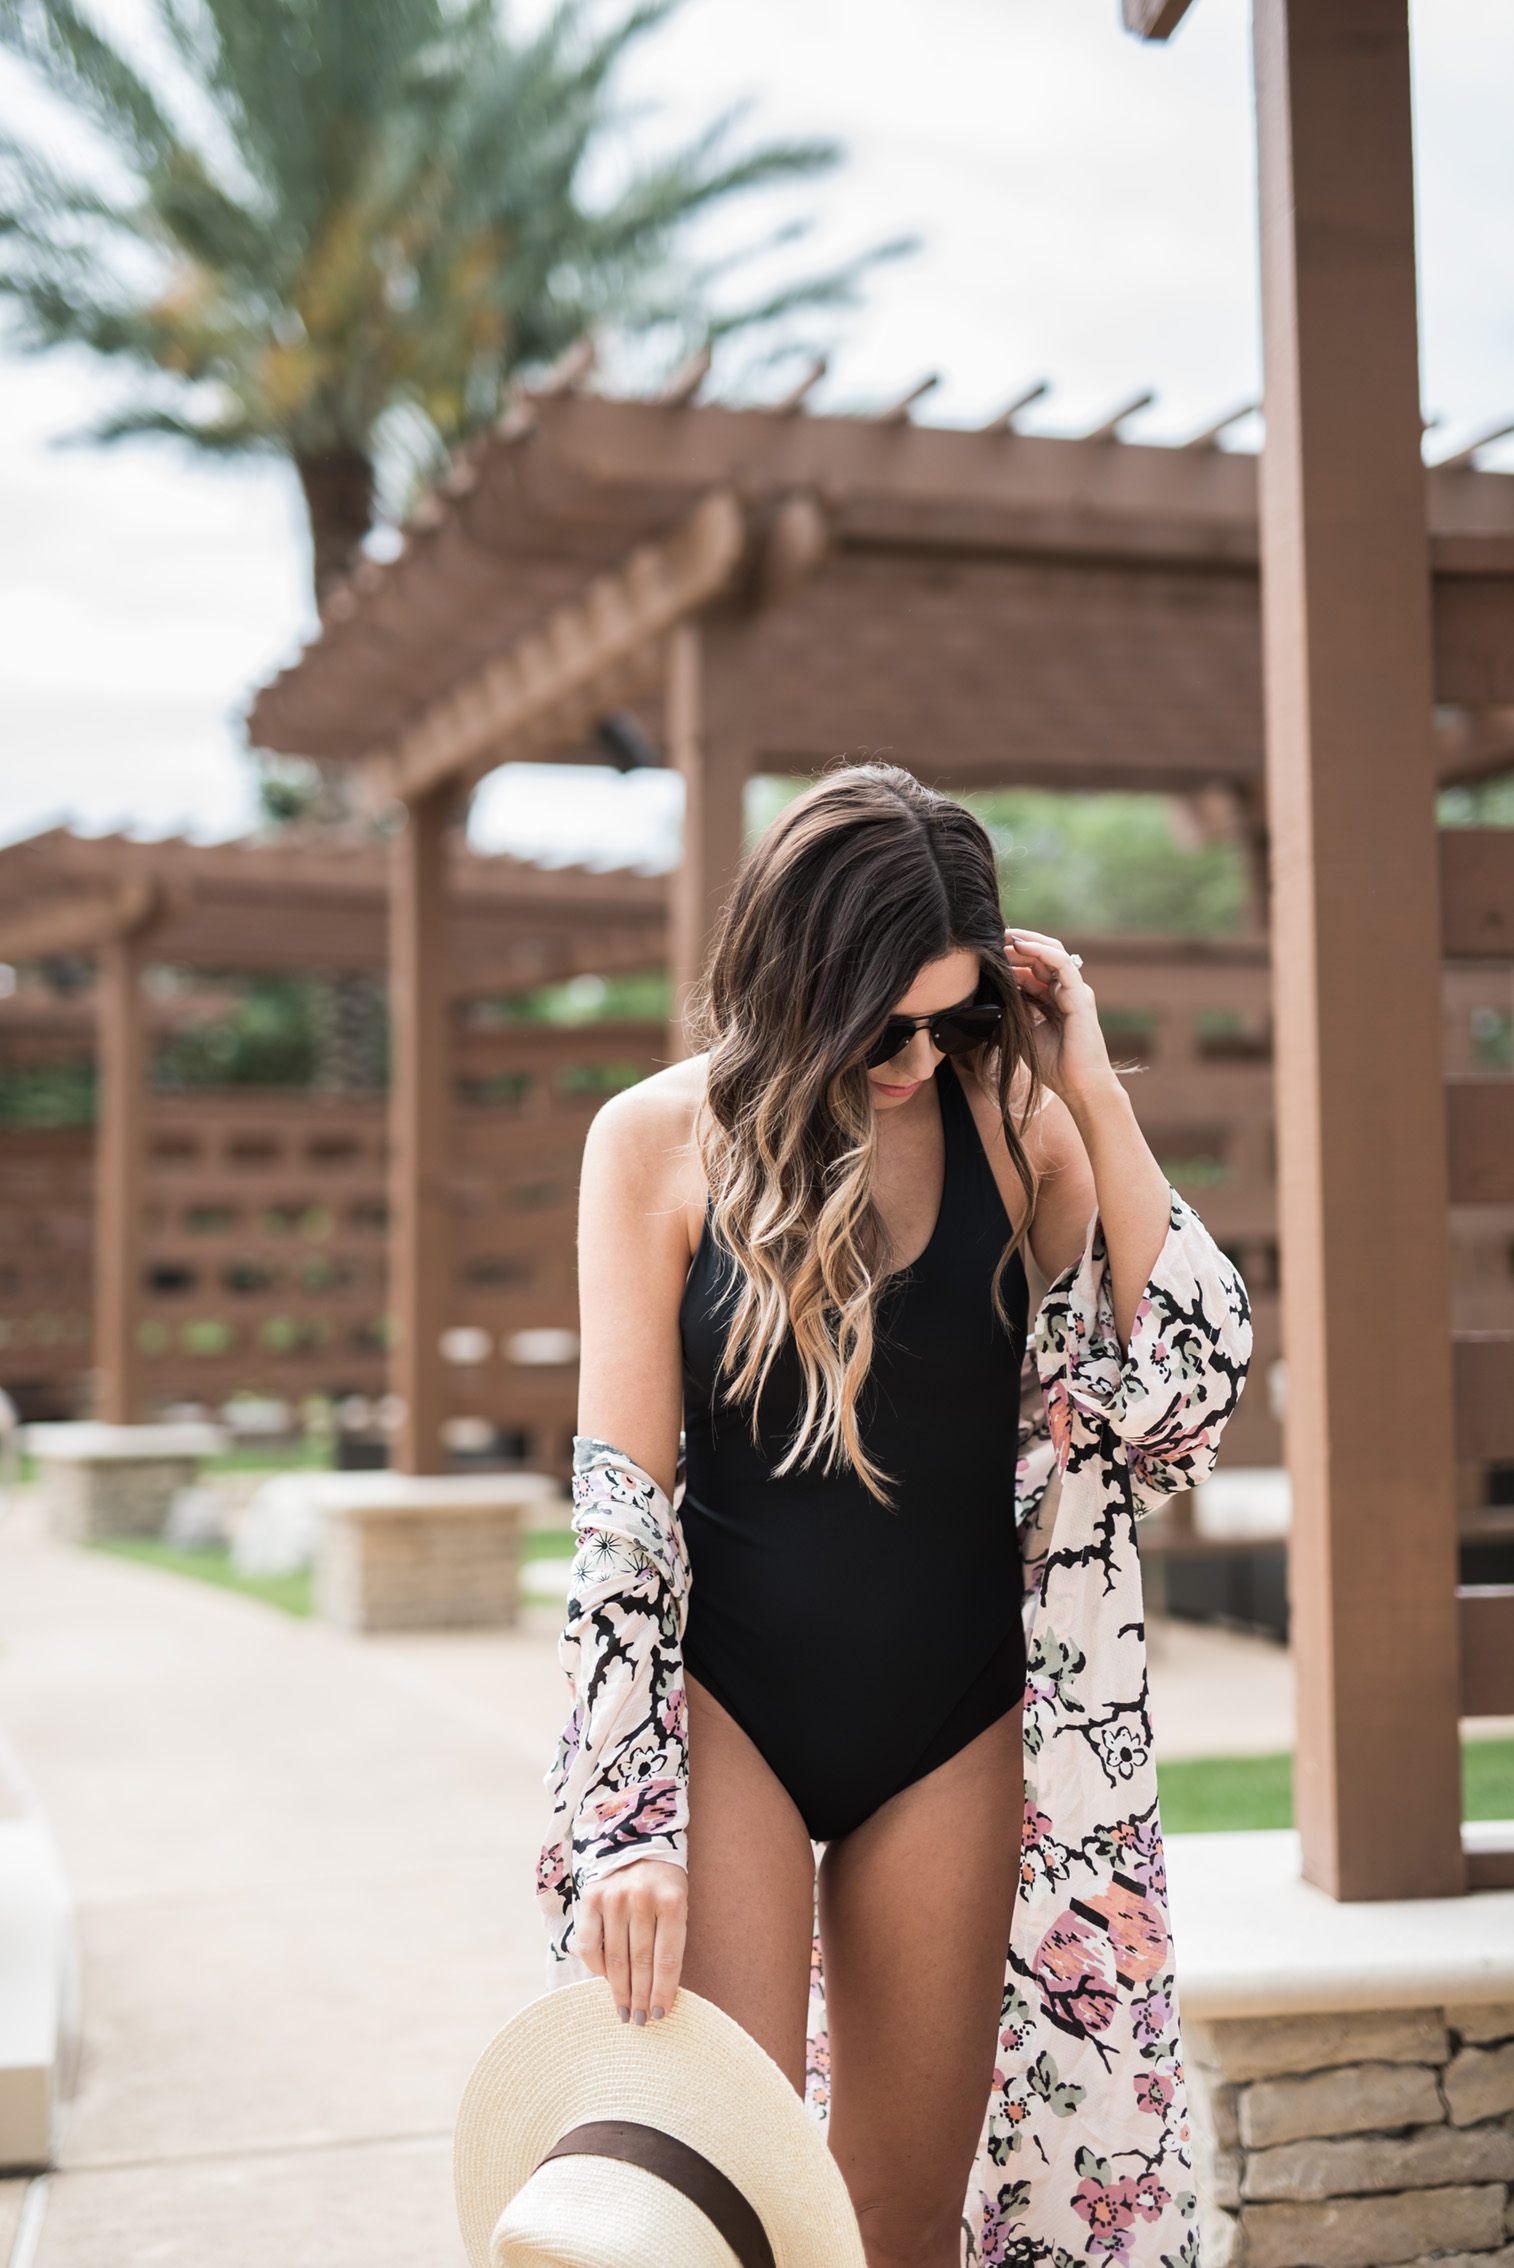 Tiffany Jais Houston fashion and lifestyle blogger | Black one piece suit, floral cover up, pool outfit ides, free people,